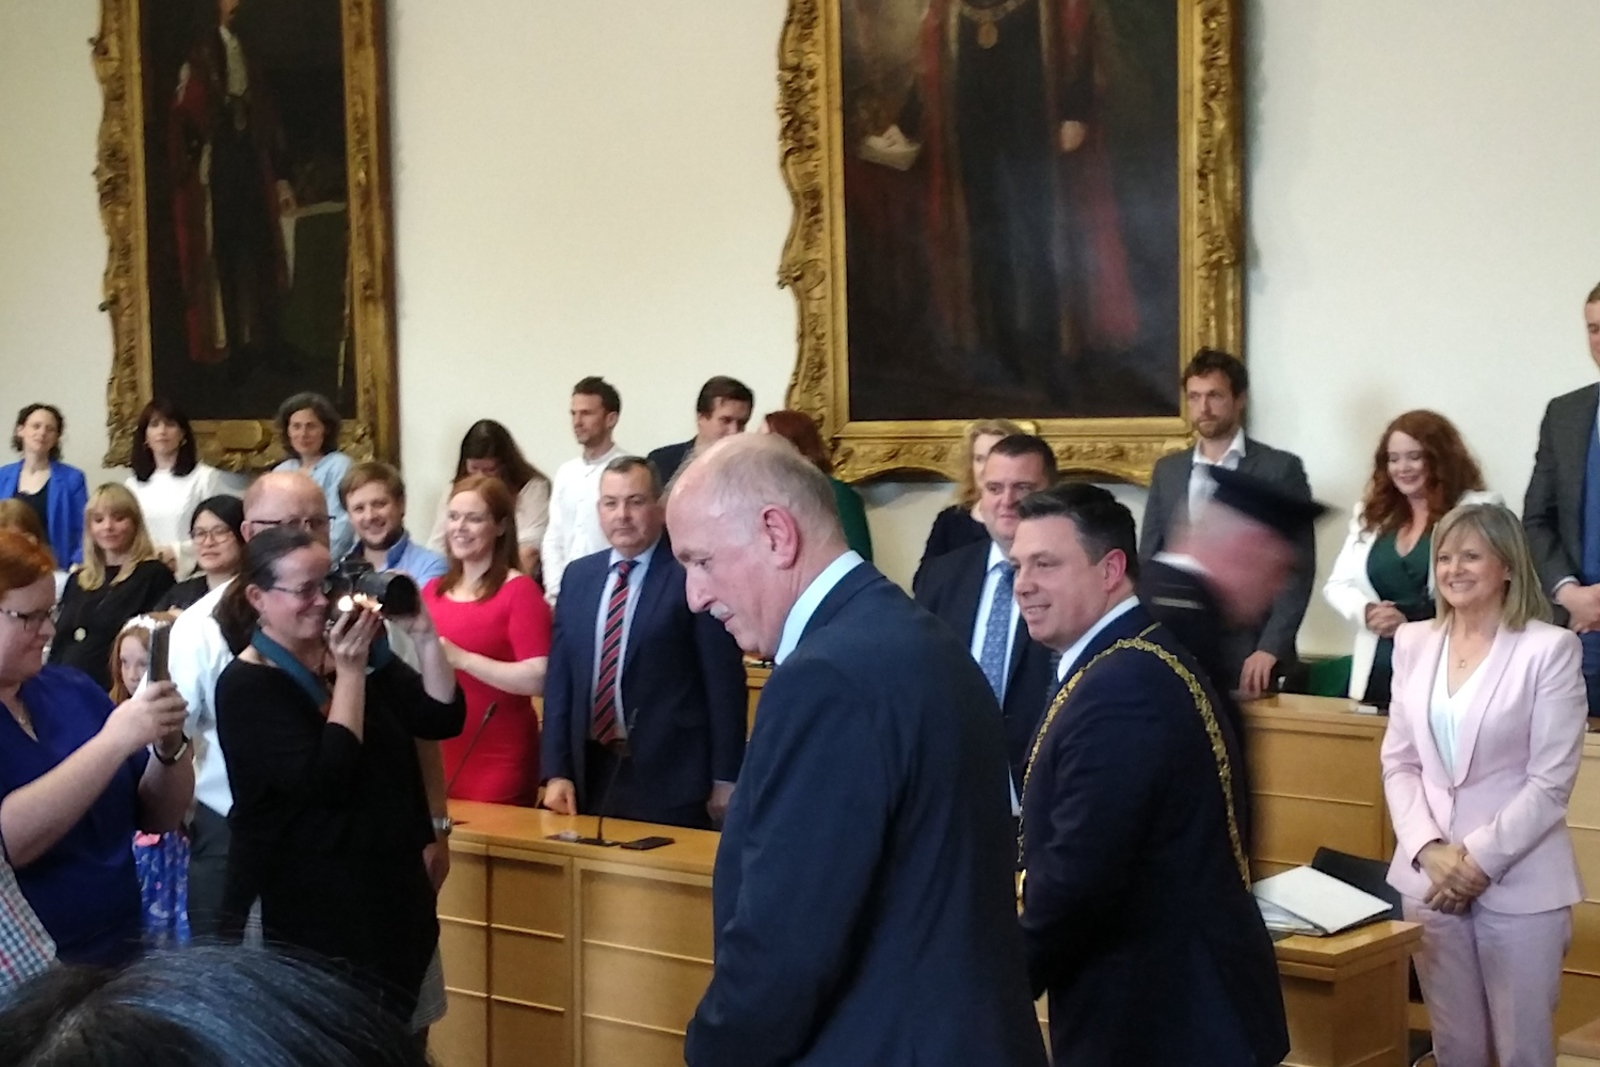 Fresh from Election, New Dublin City Councillors Take Their Seats, Lay Their Plans